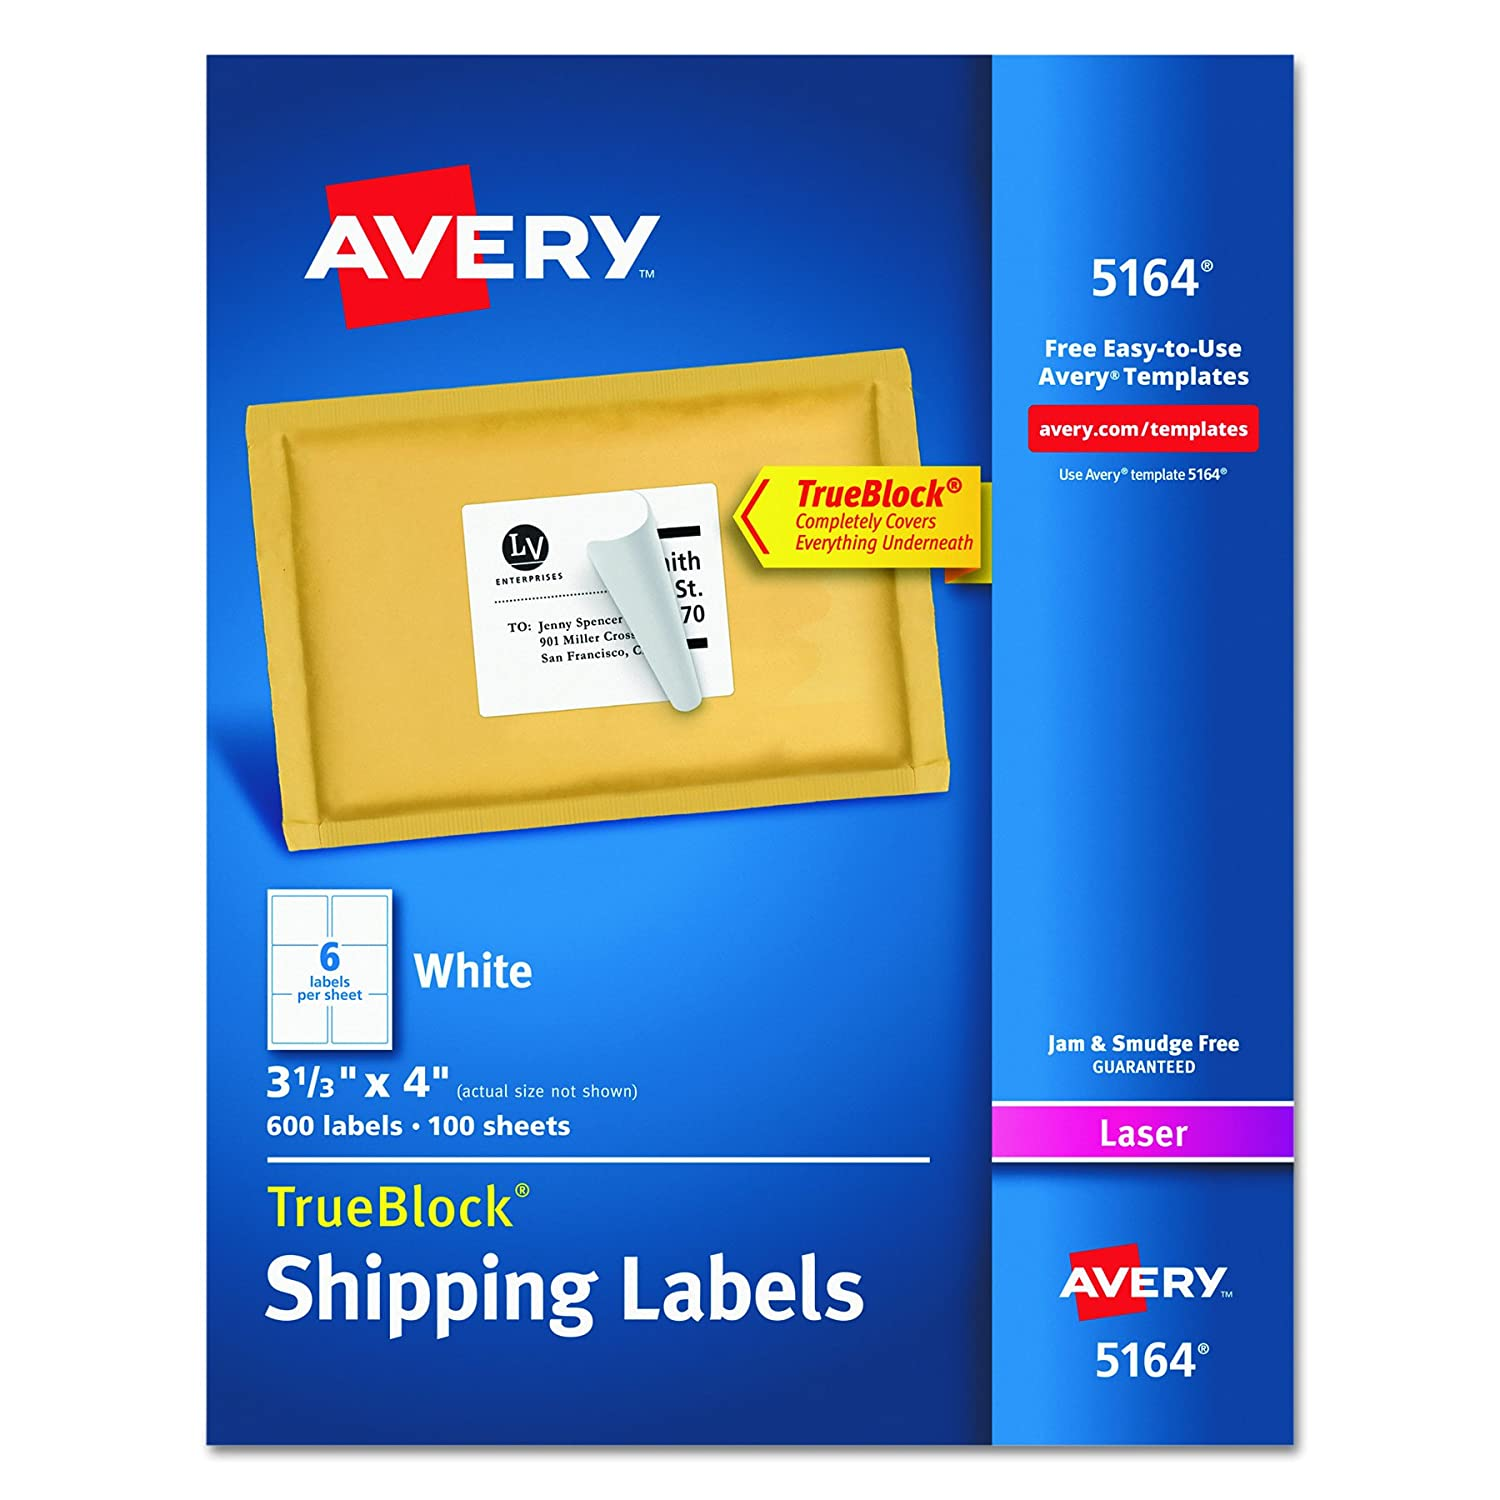 Amazon avery shipping labels for laser printers with amazon avery shipping labels for laser printers with trueblock technology 3333 x 4 inches white box of 600 5164 office products pronofoot35fo Choice Image